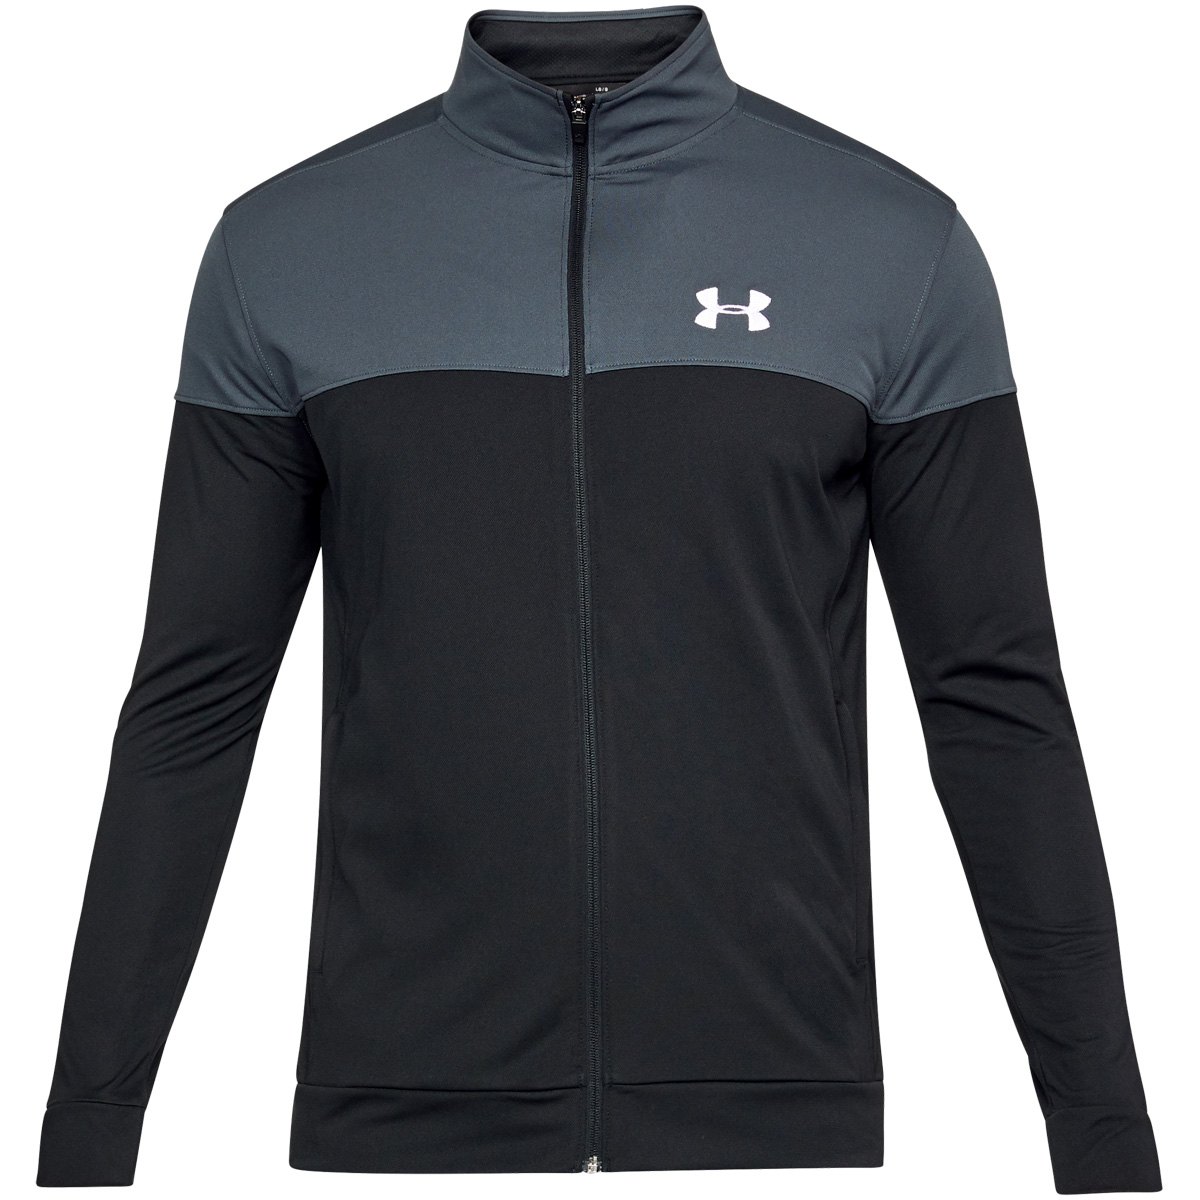 Under-Armour-Mens-2019-Sportstyle-Pique-Sports-Training-Full-Zip-Track-Jacket thumbnail 12